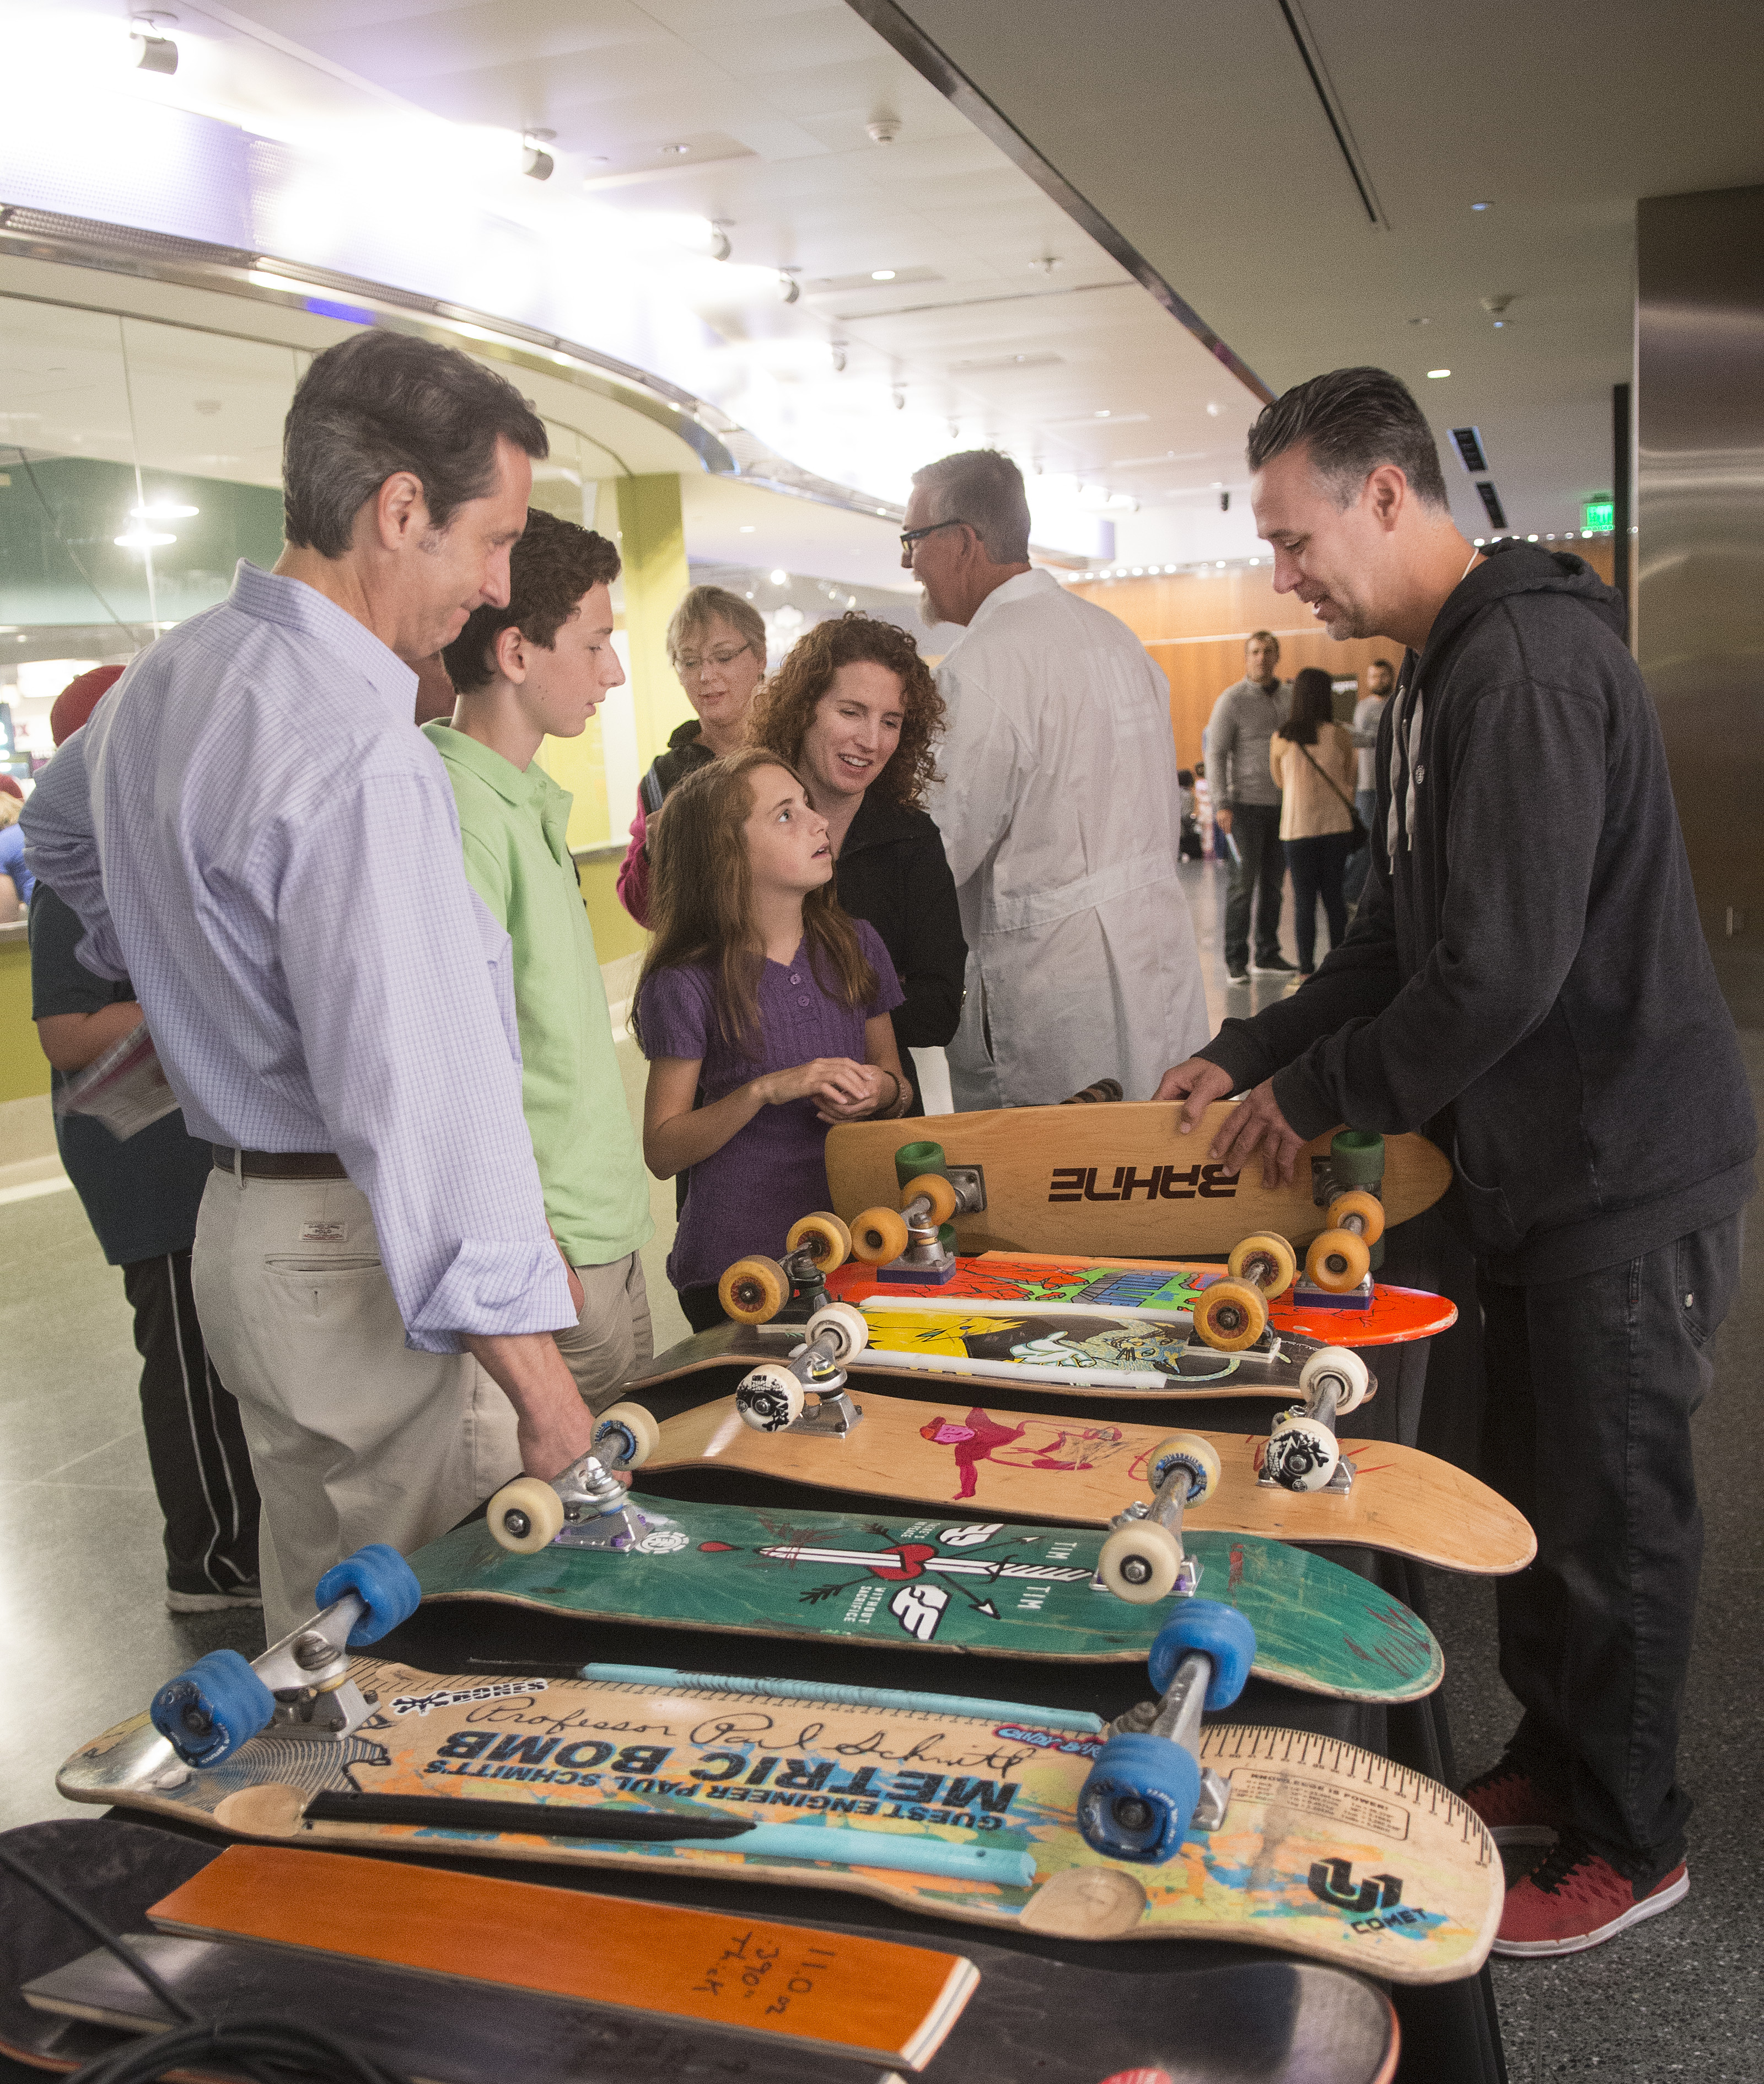 Josh Friedberg demonstrates historic skateboards to visitors to the Innoskate table at the USPTO/Smithsonian Innovation Festival